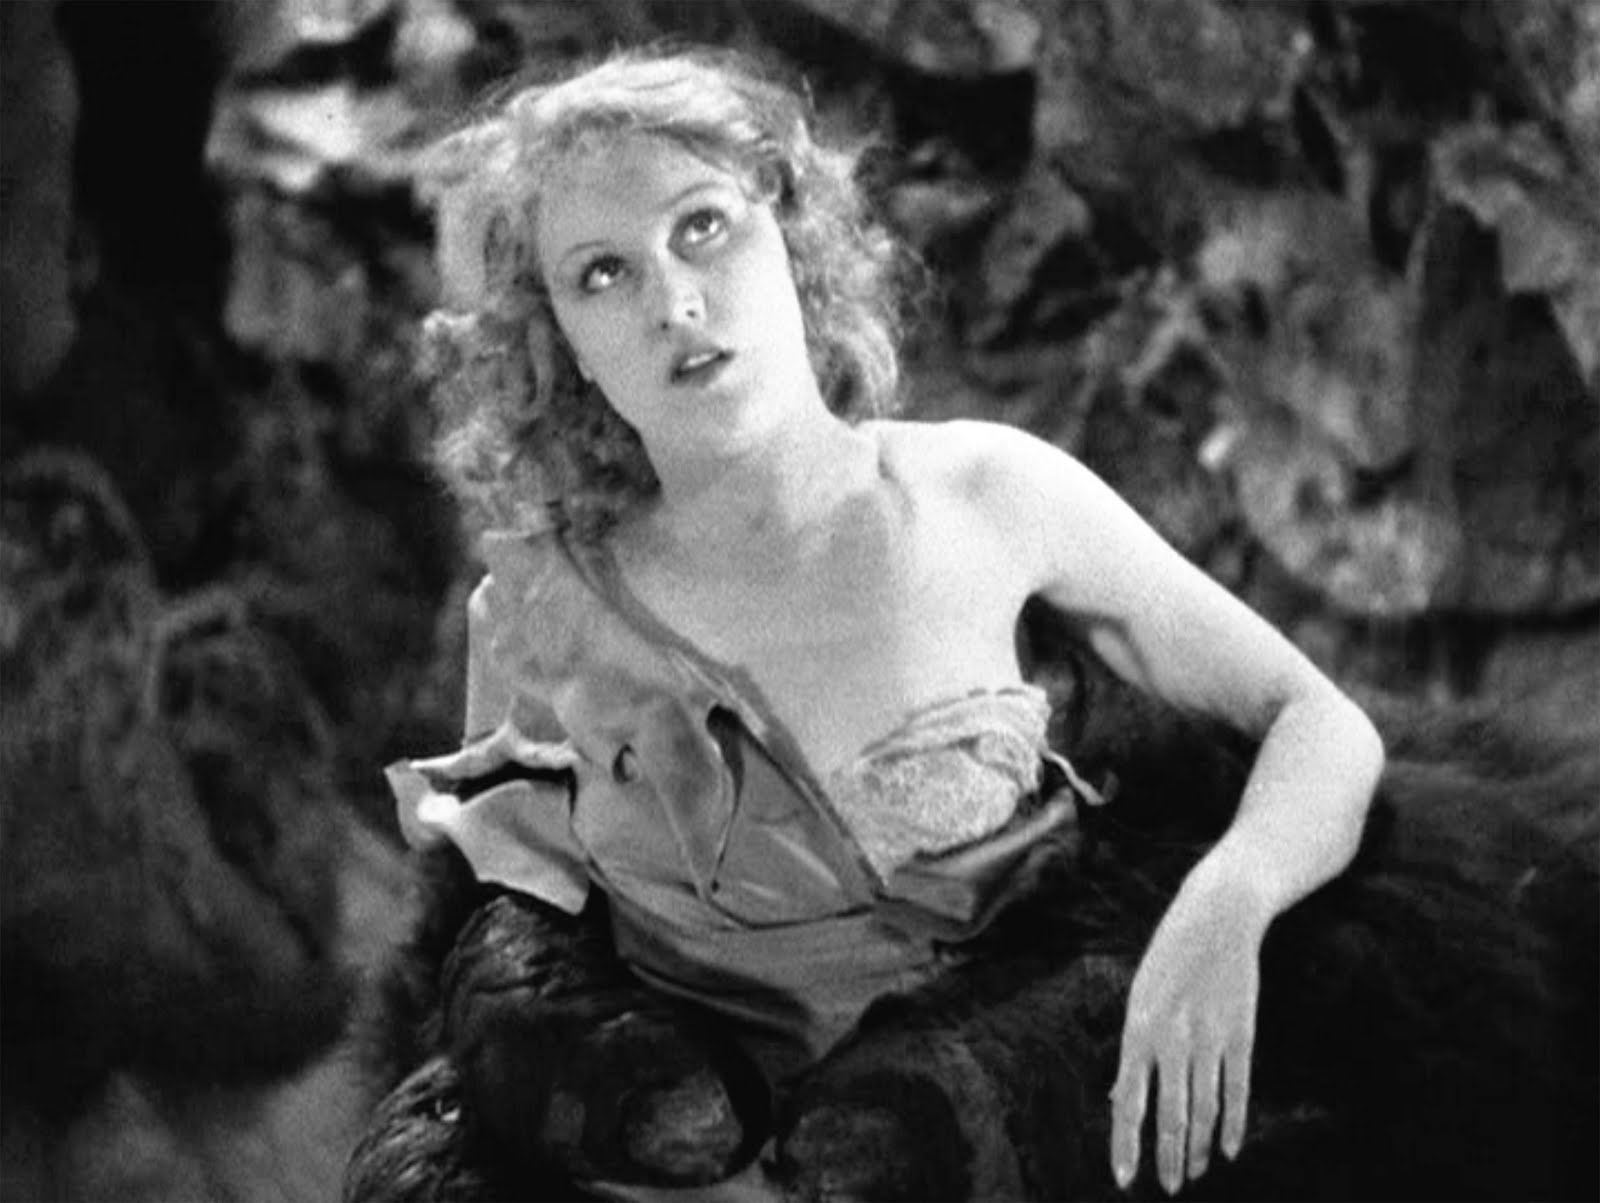 Ann Darrow (Fay Wray) partially undressed by Kong.